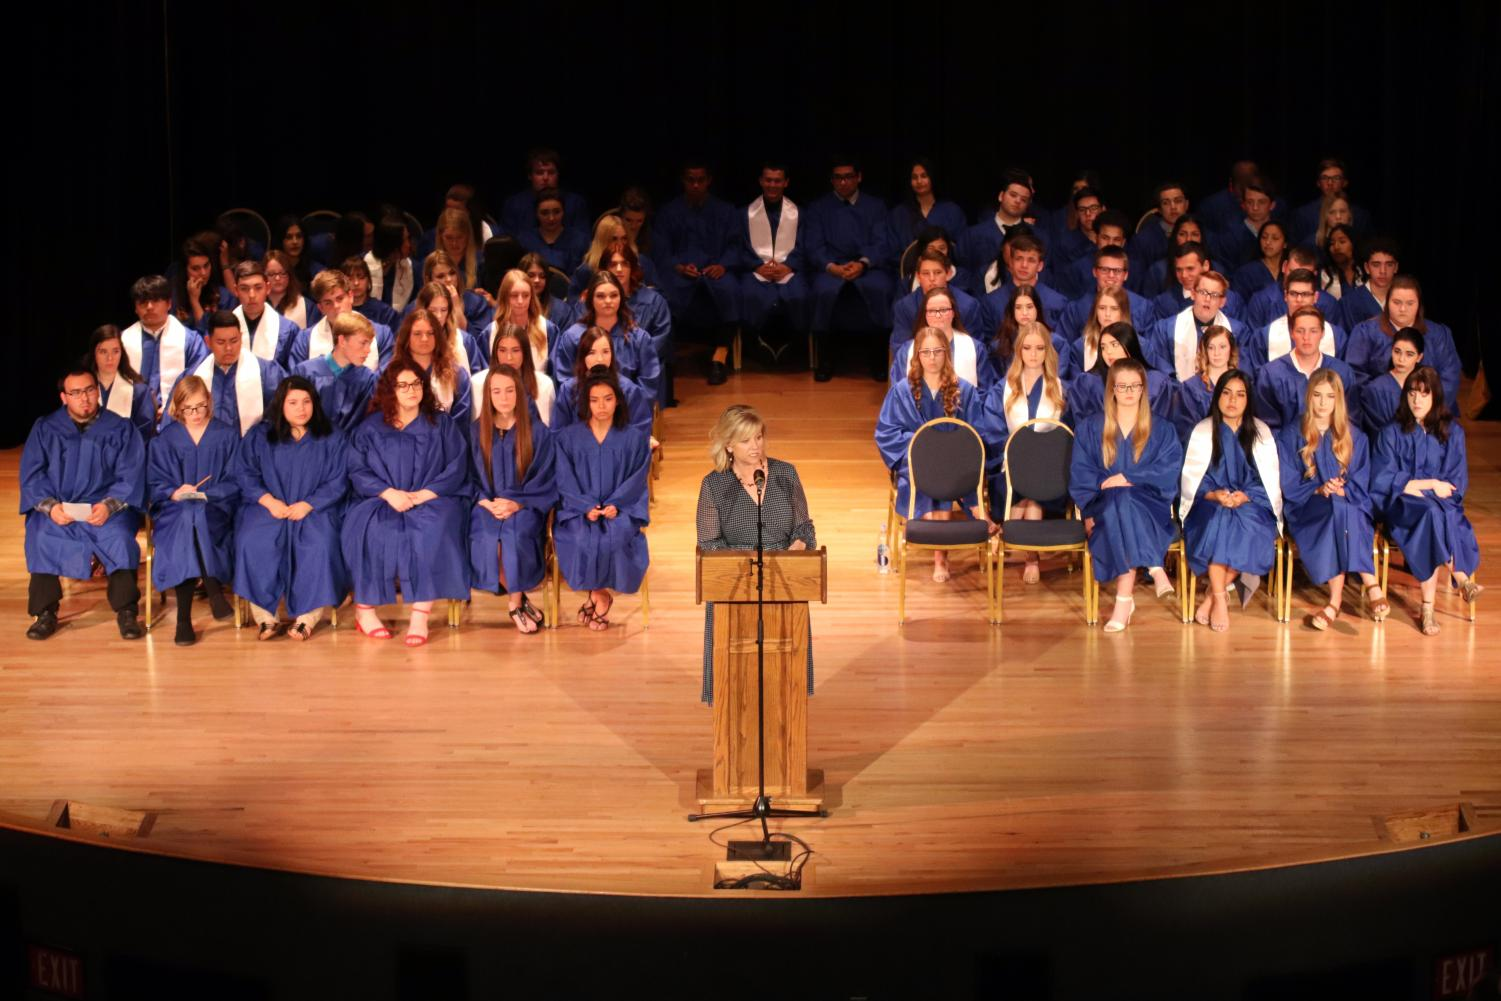 Mary Alice Finn introduces the seniors during Honors Night 2018. This was taken at last year's ceremony.